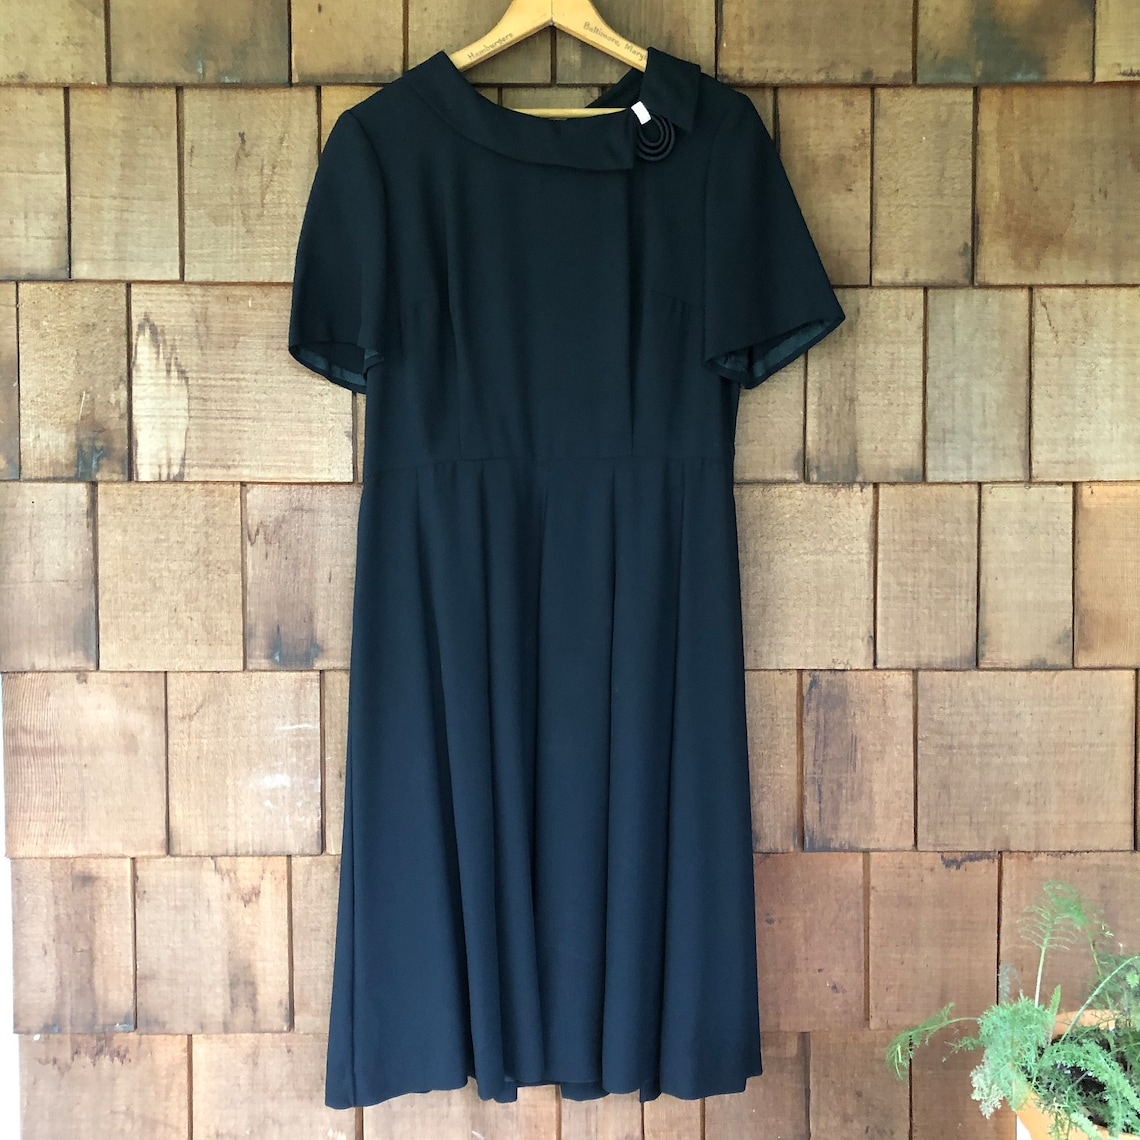 1950s Vintage Black Dress. Exquisite Collar Detail with